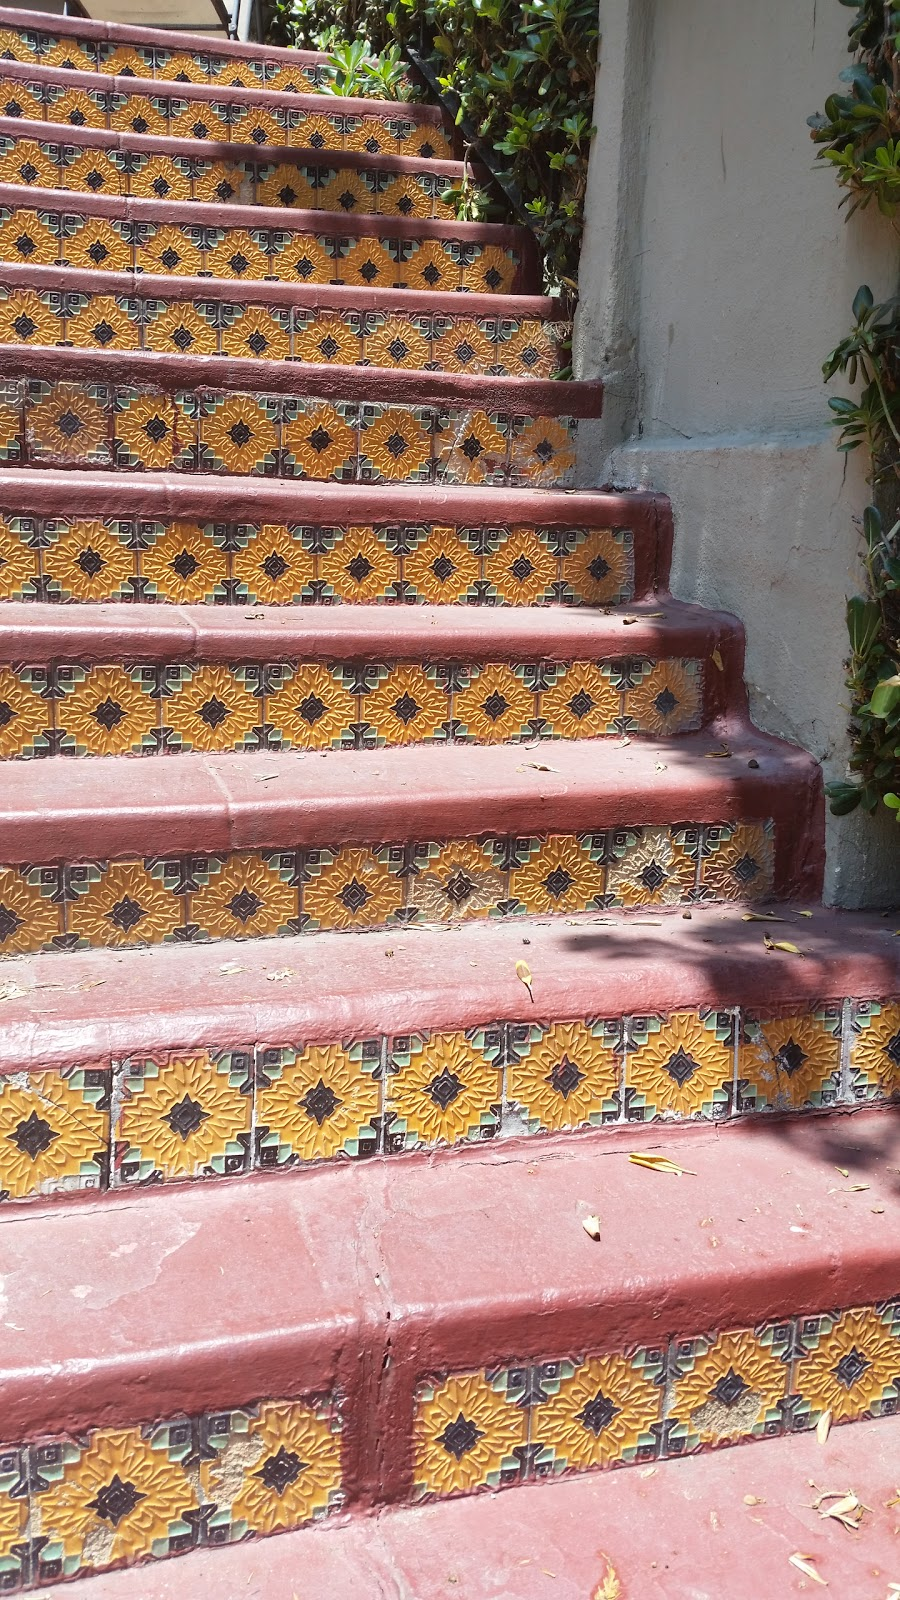 These stair risers are tiled with a sunflower motif